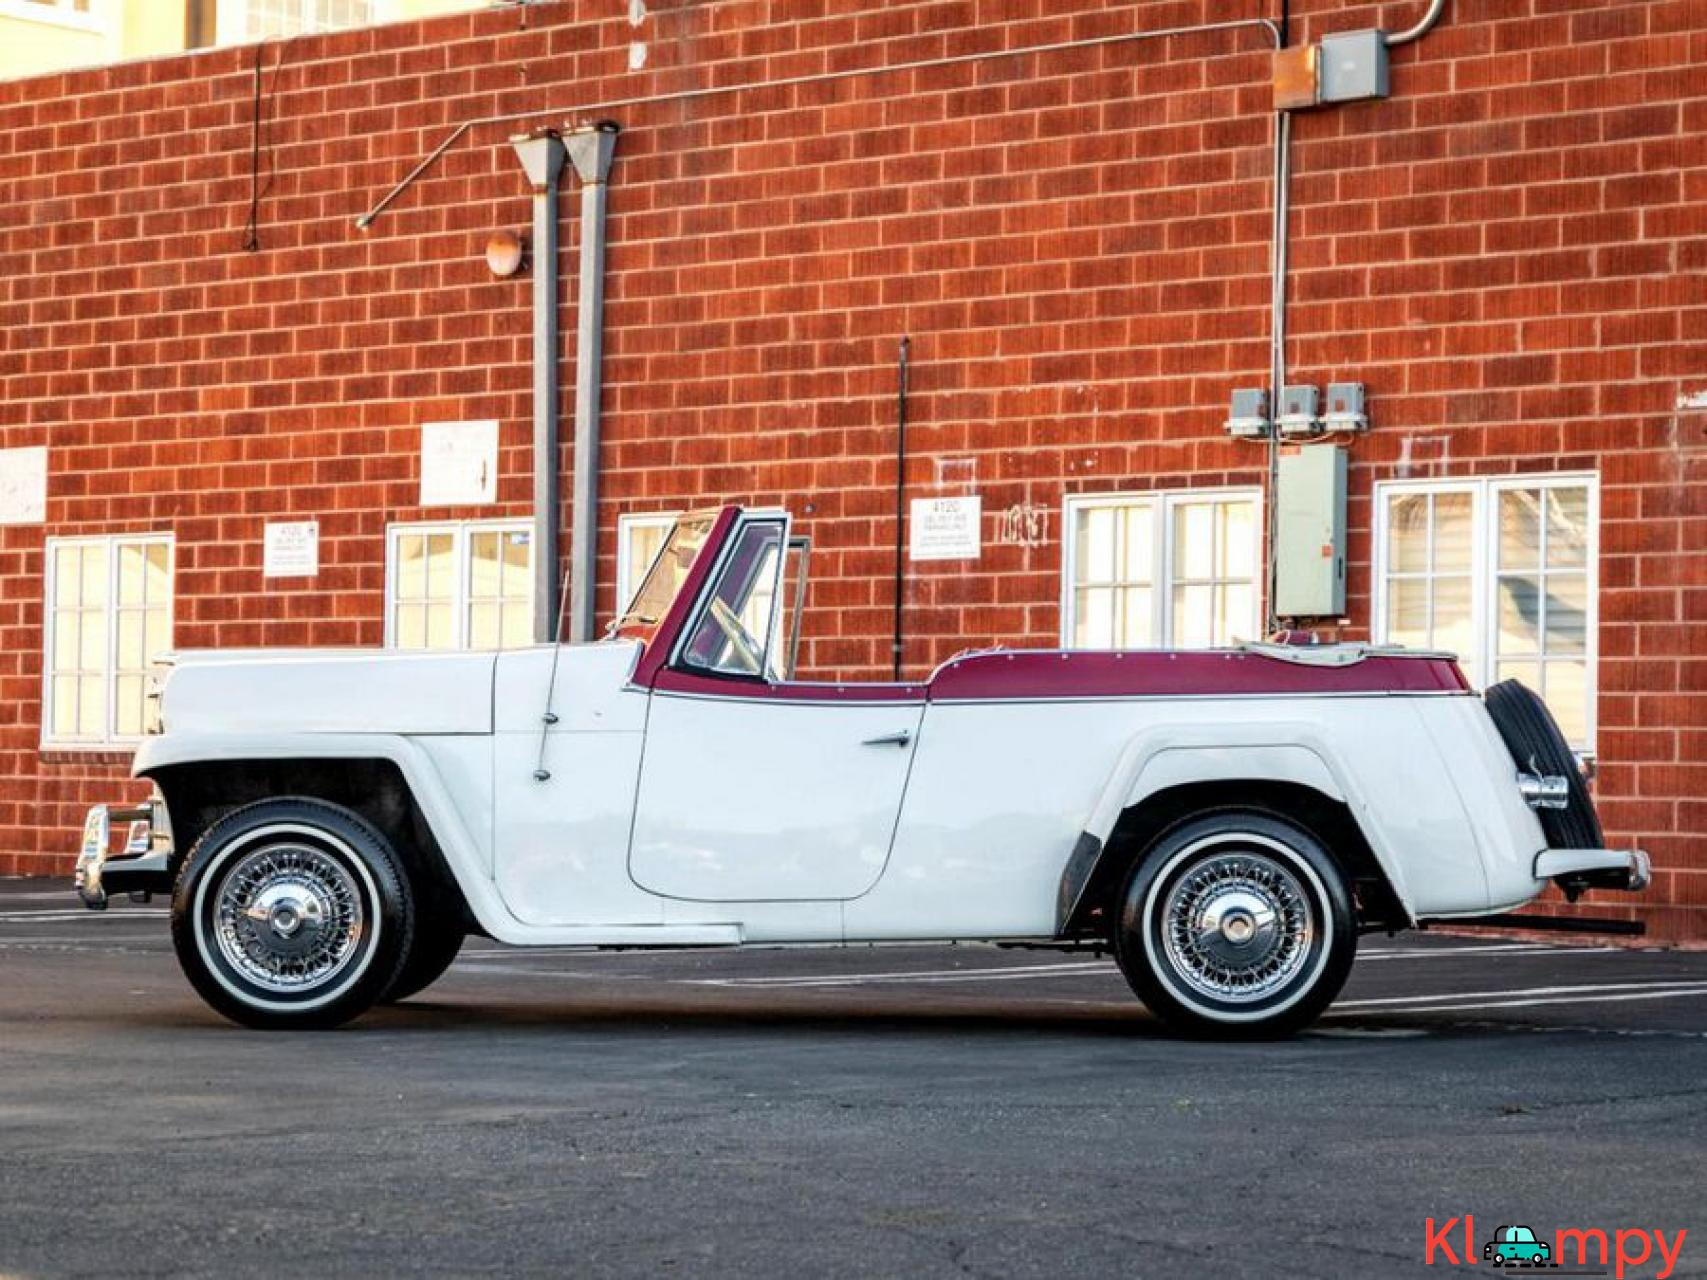 1951 Willys Jeepster Convertible 134.2 cu in 2.2 L - 5/17